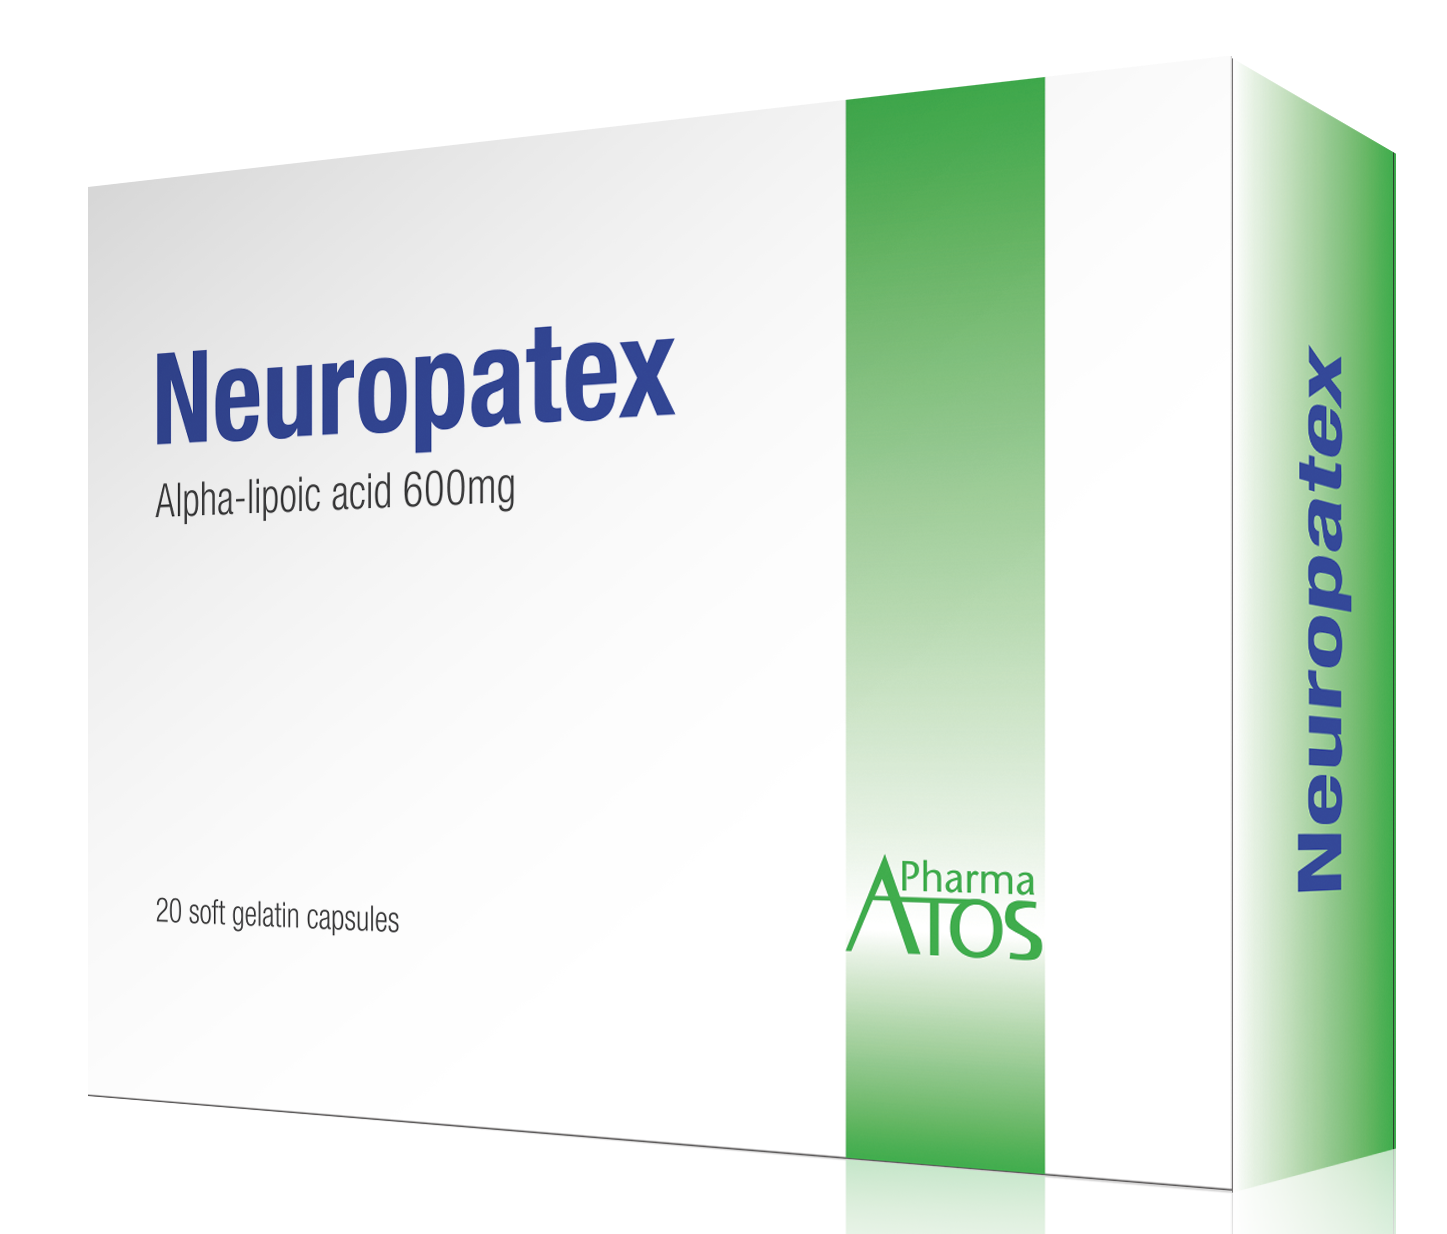 ATOS Pharma Neurpatex